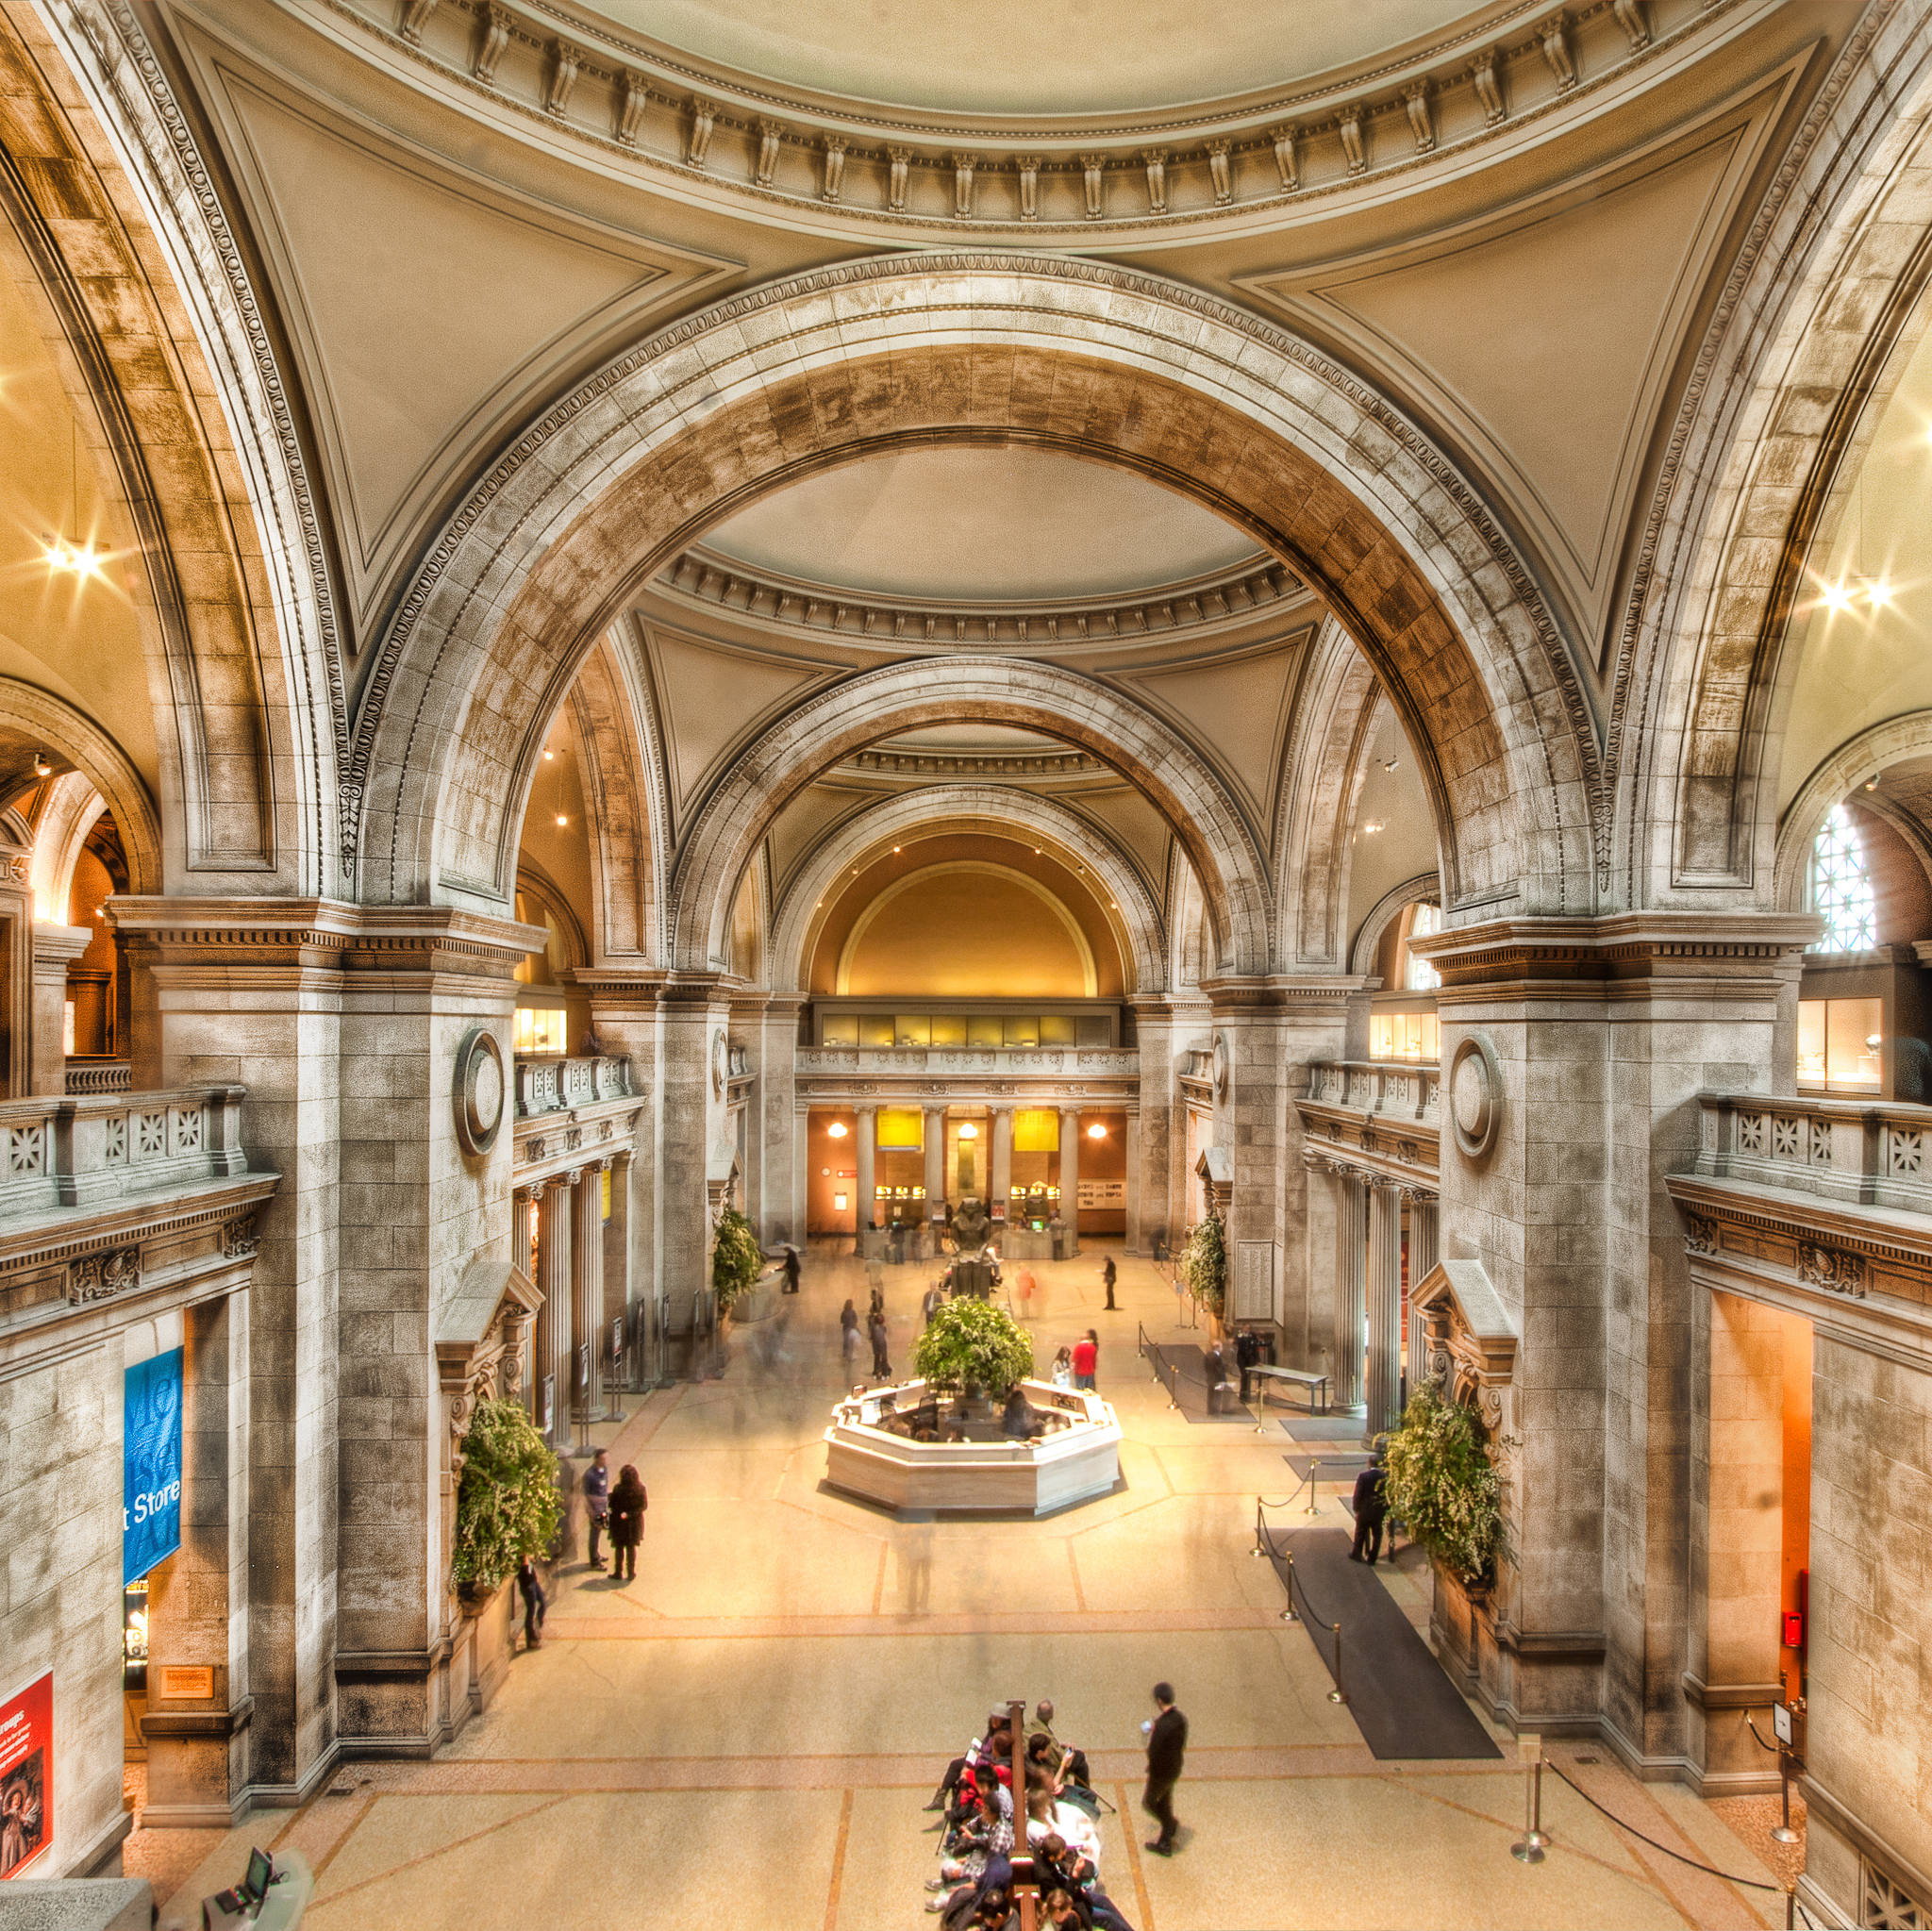 Metropolitan museum of art for Metropolitan museum of art in new york